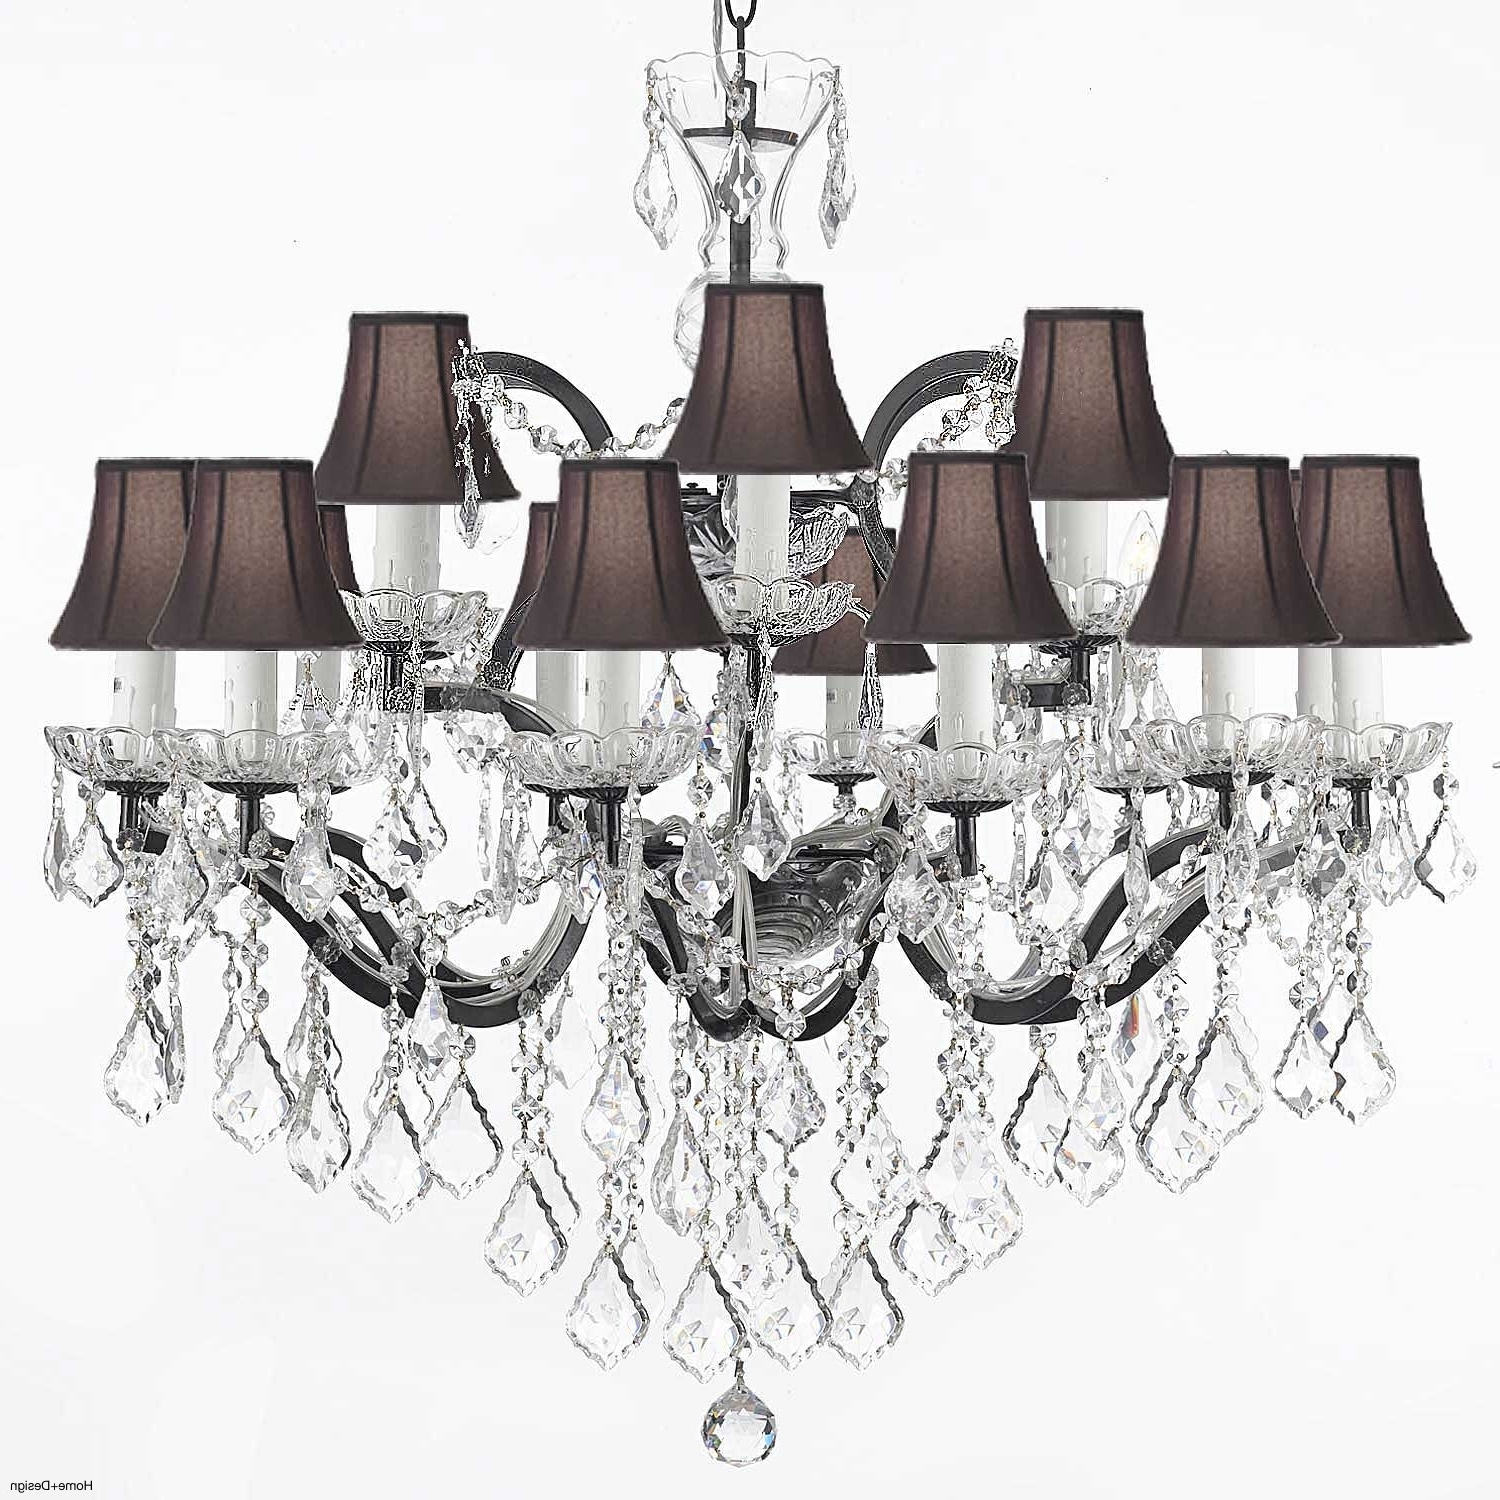 Clip On Chandelier Lamp Shades Regarding Famous Clip On Lamp Shades For Chandeliers Uk – Chandelier Designs (View 12 of 20)